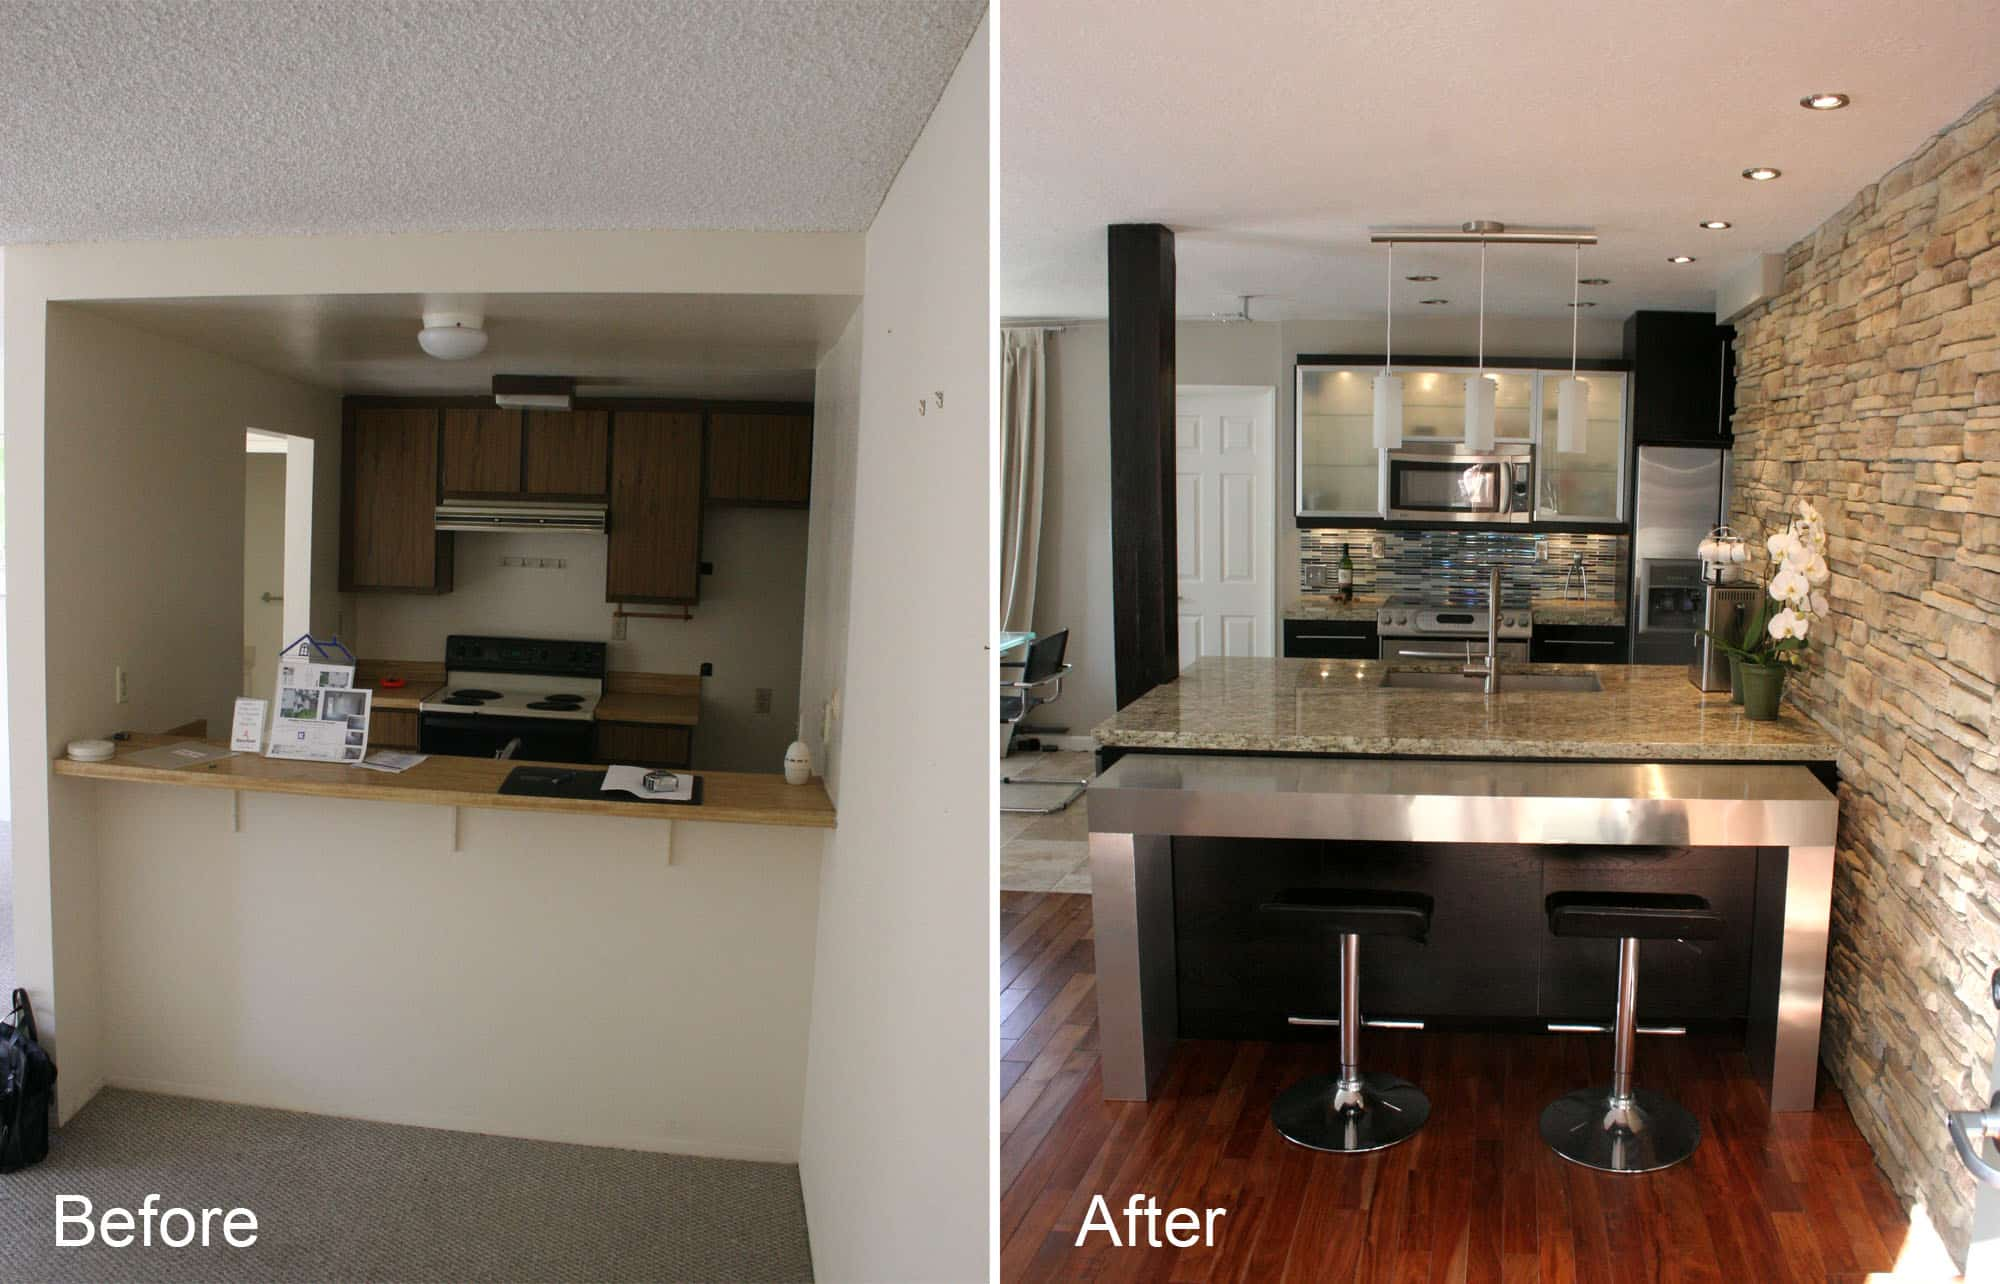 remodeling fix your foundation first how to remodel kitchen Small Kitchen Remodel Ideas Before And After